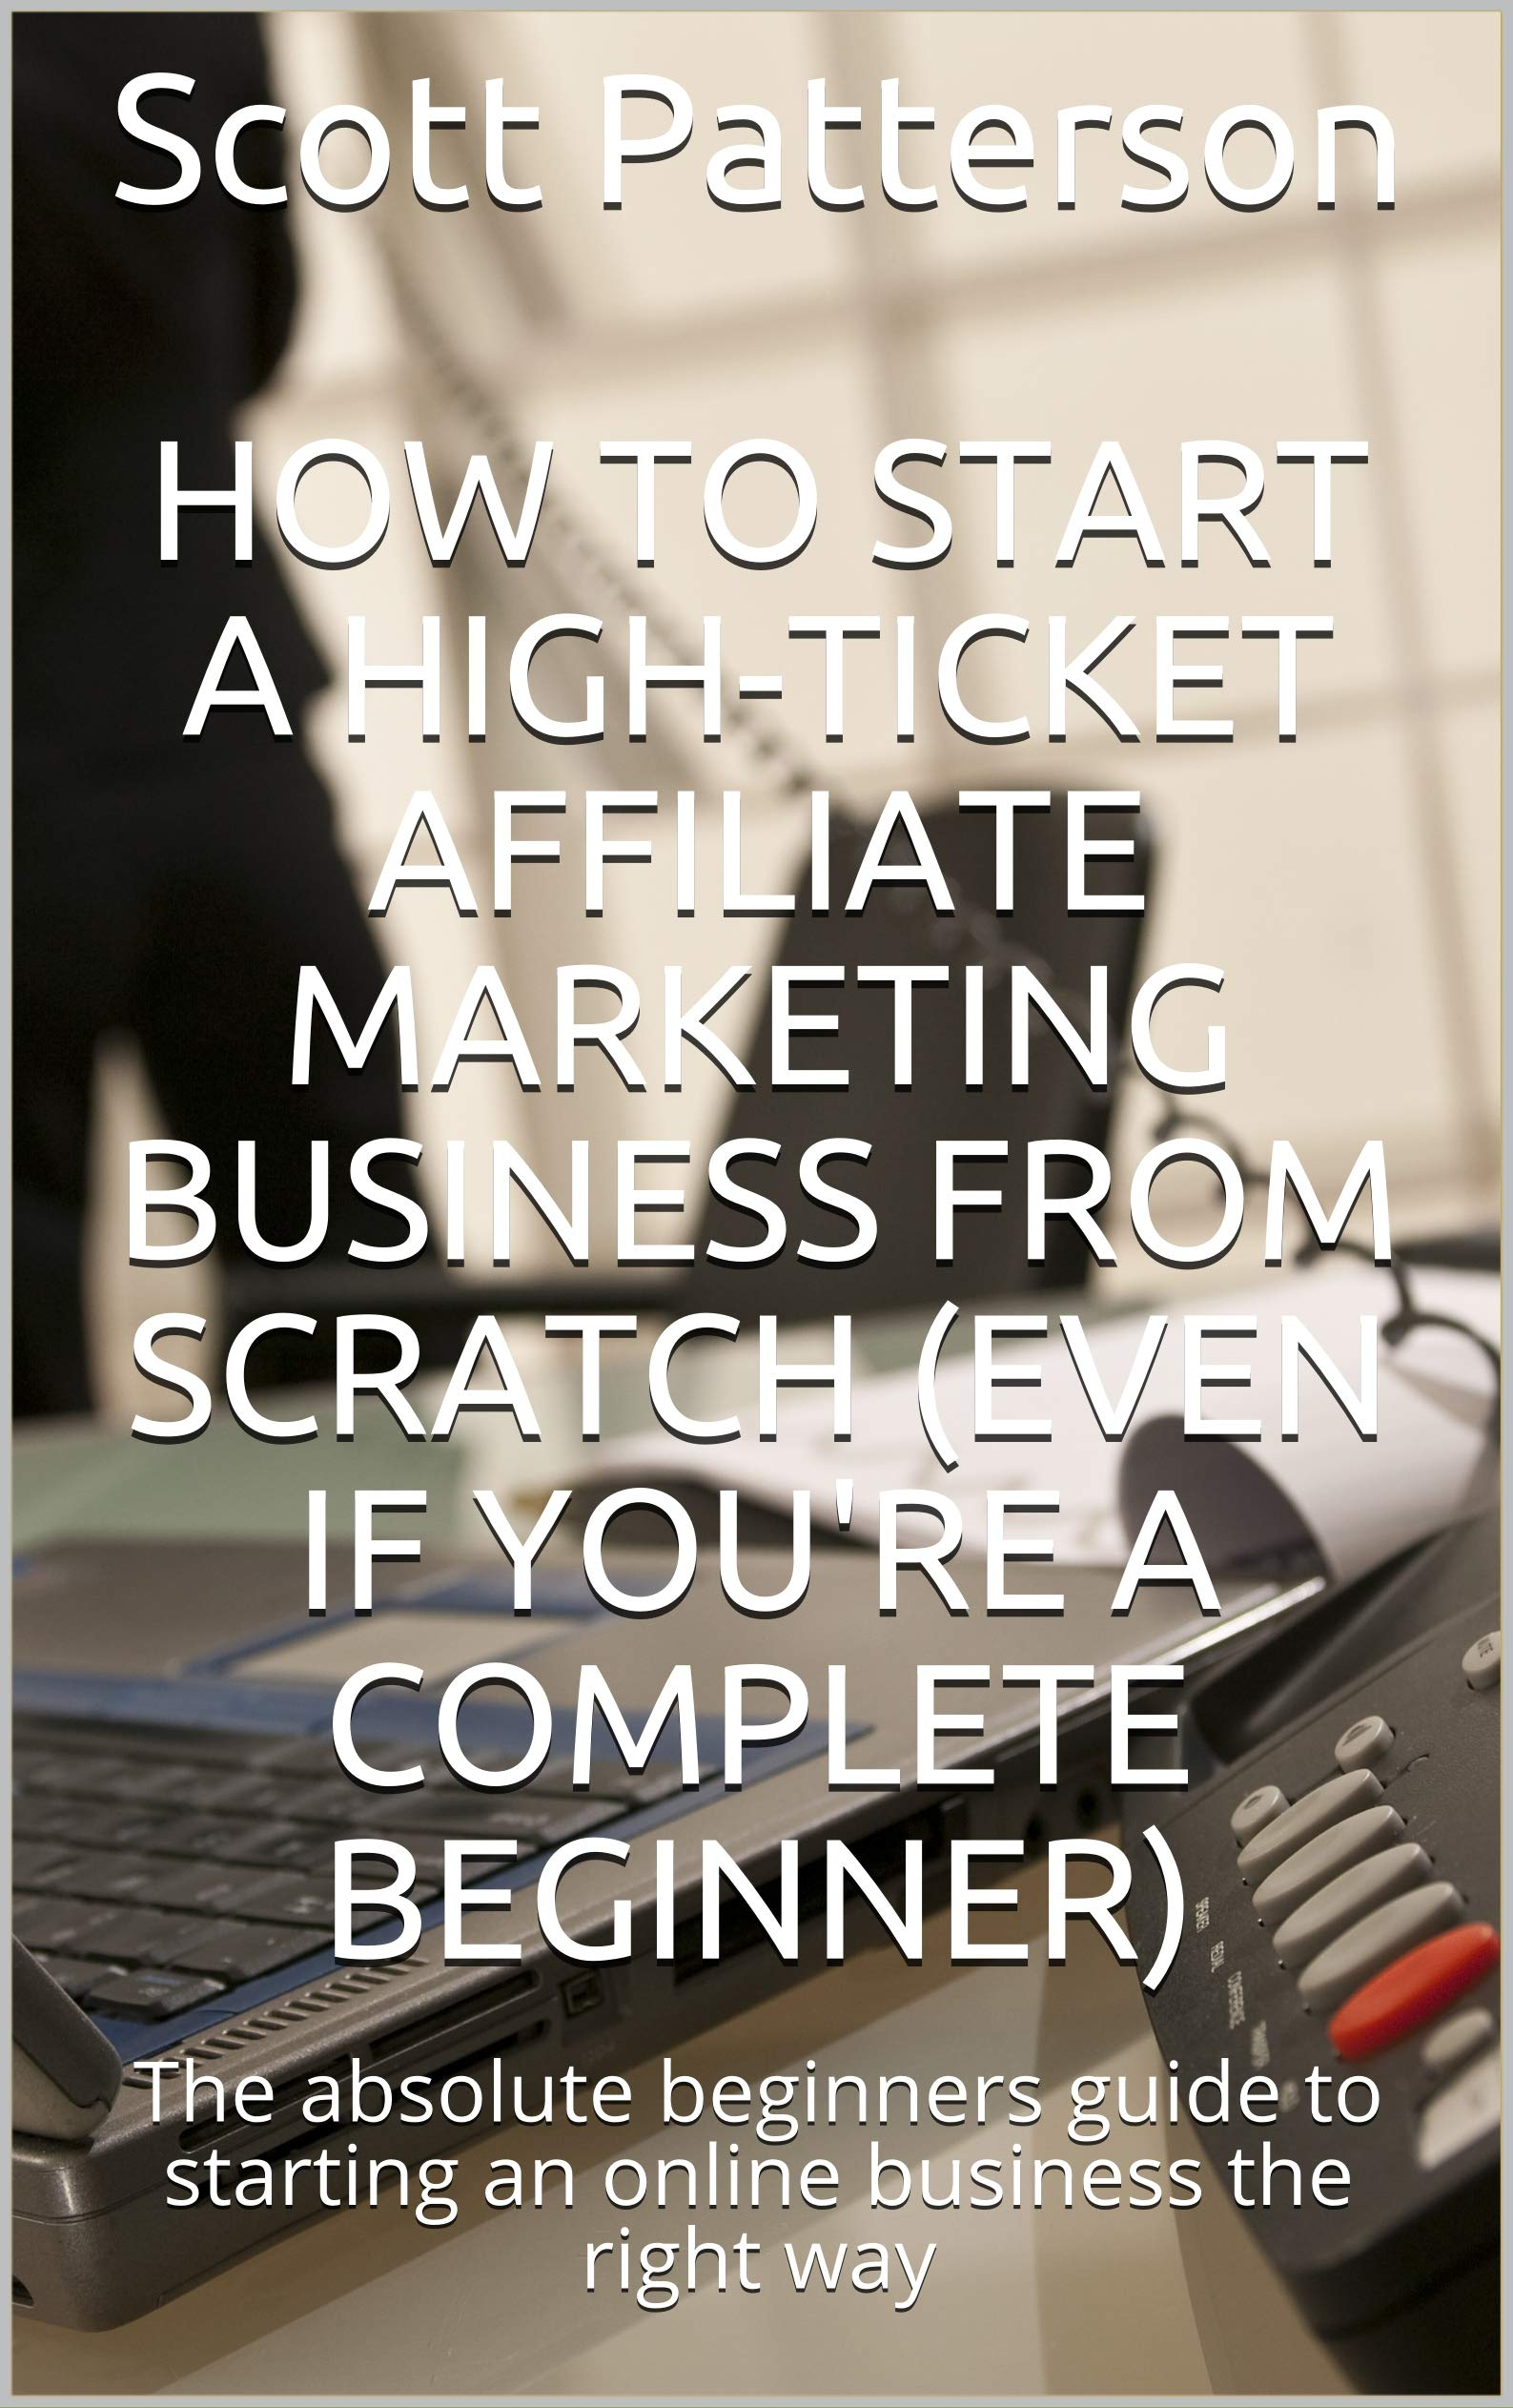 How to Start A High-Ticket Affiliate Marketing Business From Scratch (Even if You're A Complete Beginner): The absolute beginners guide to starting an online business the right way